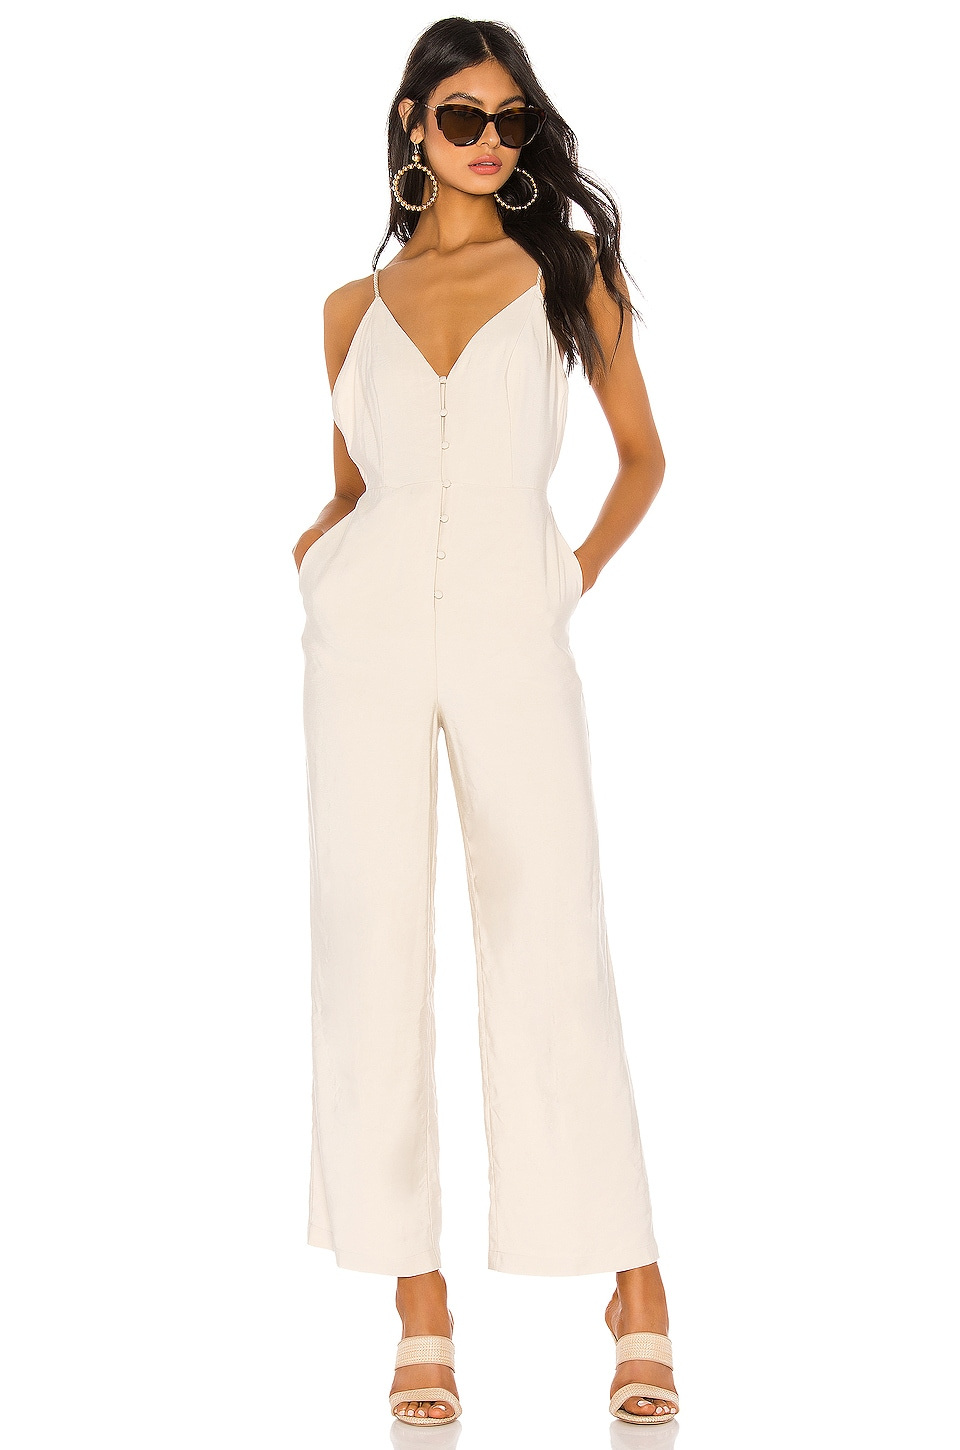 Lovers + Friends Jessica Jumpsuit in Nude